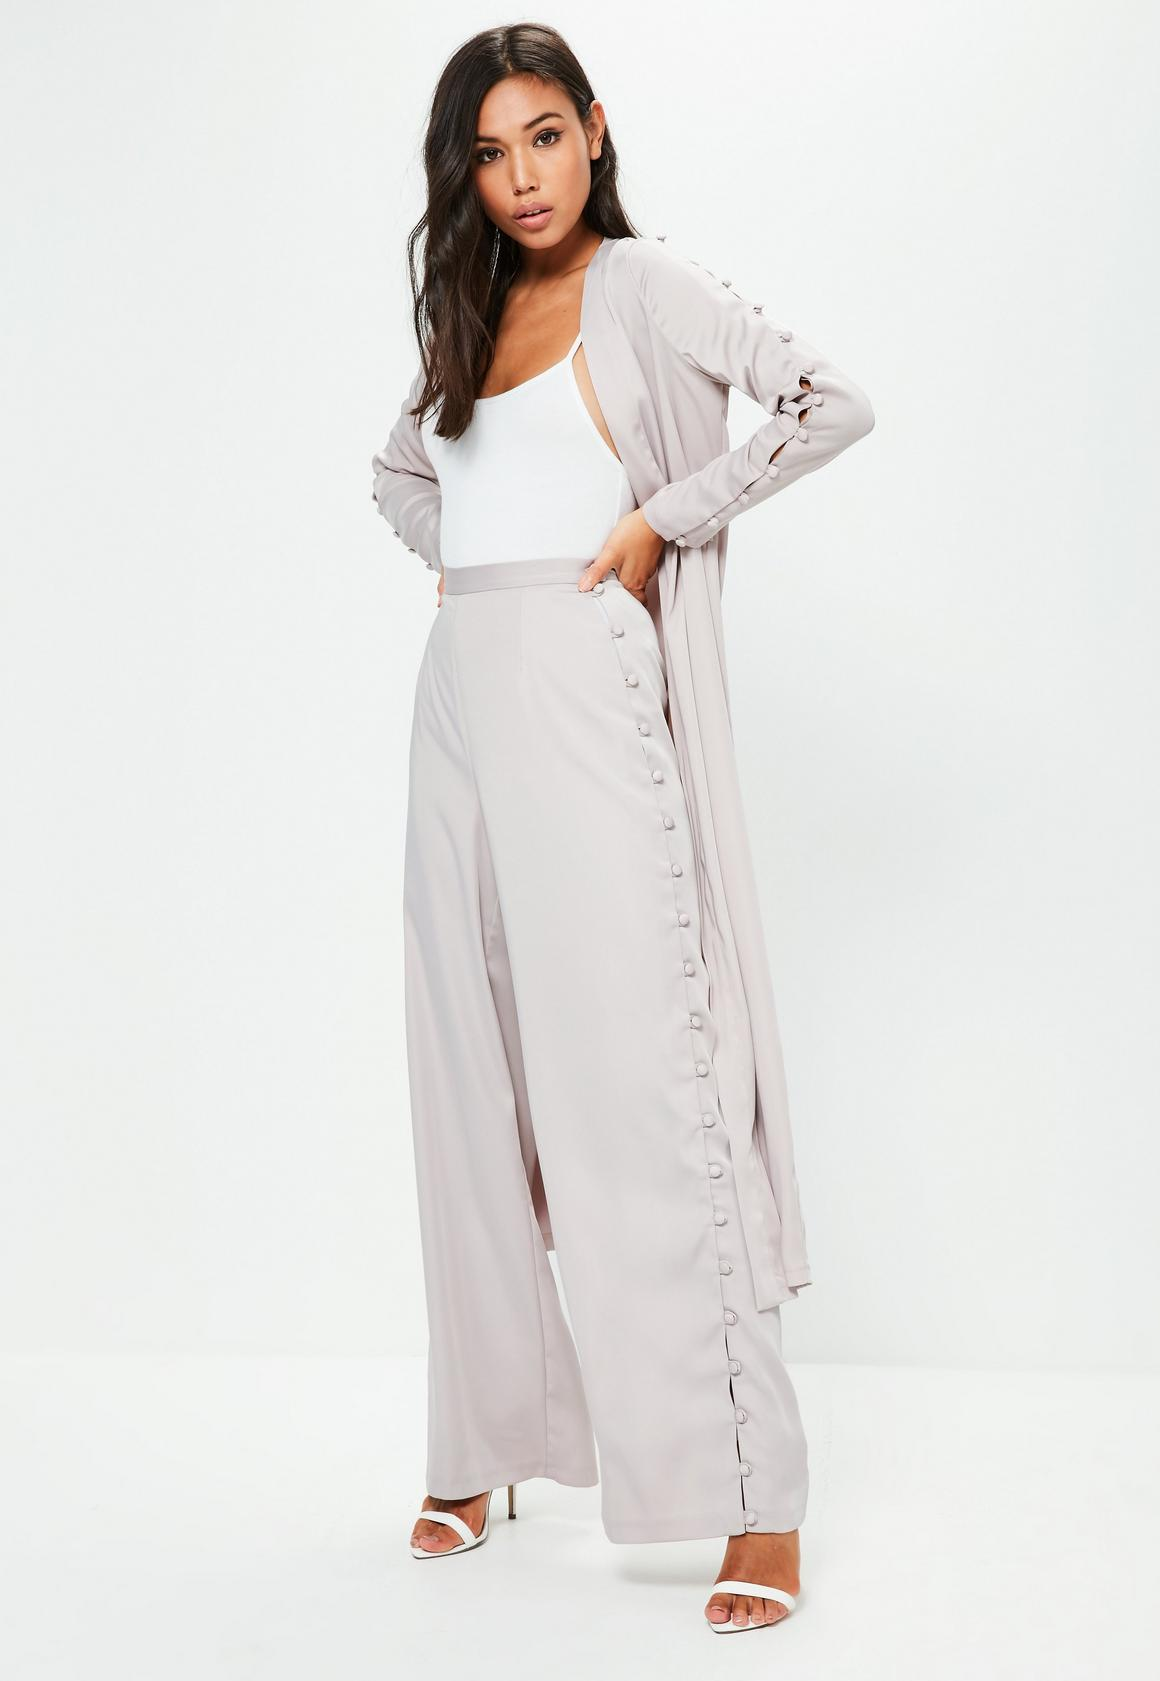 Wide Leg Pants, Palazzo & Loose Fit Pants   Missguided